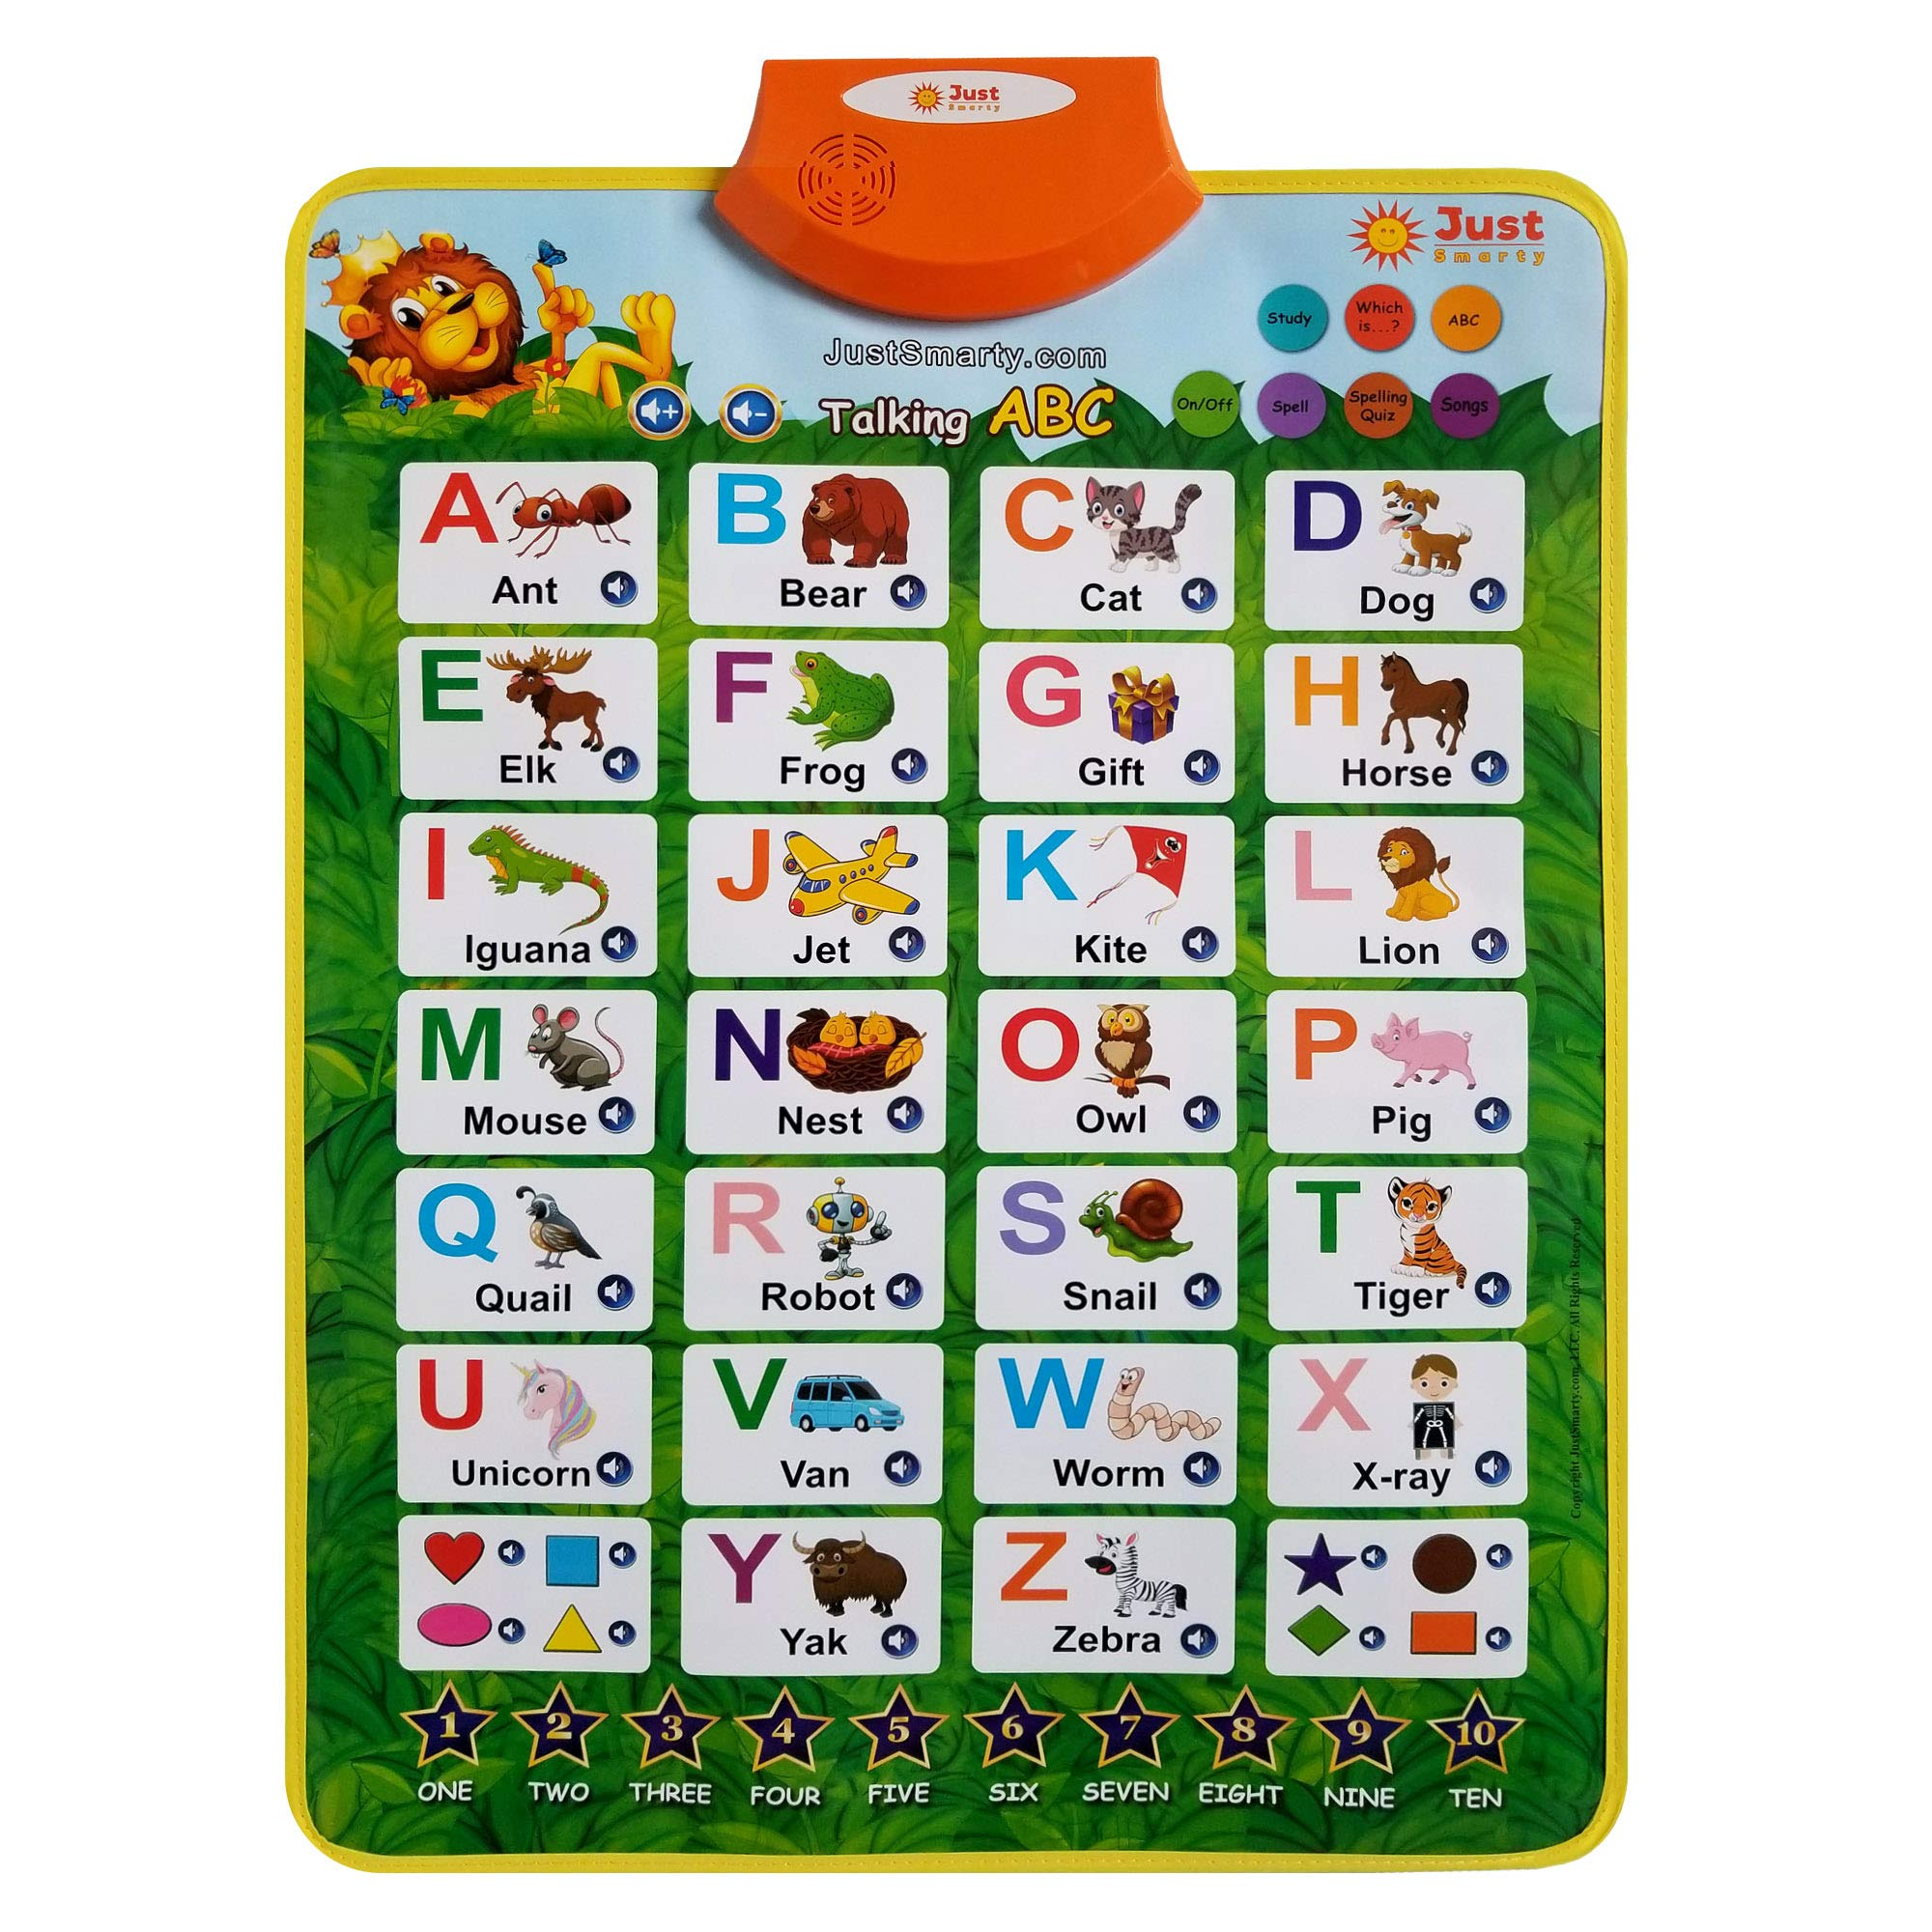 Just Smarty Electronic Interactive Alphabet Wall Chart with Shapes, Colors and Spelling, Talking ABC & 123s & Music Poster, Best Educational Toy for Toddler. Kids Fun Learning at Daycare, Preschool